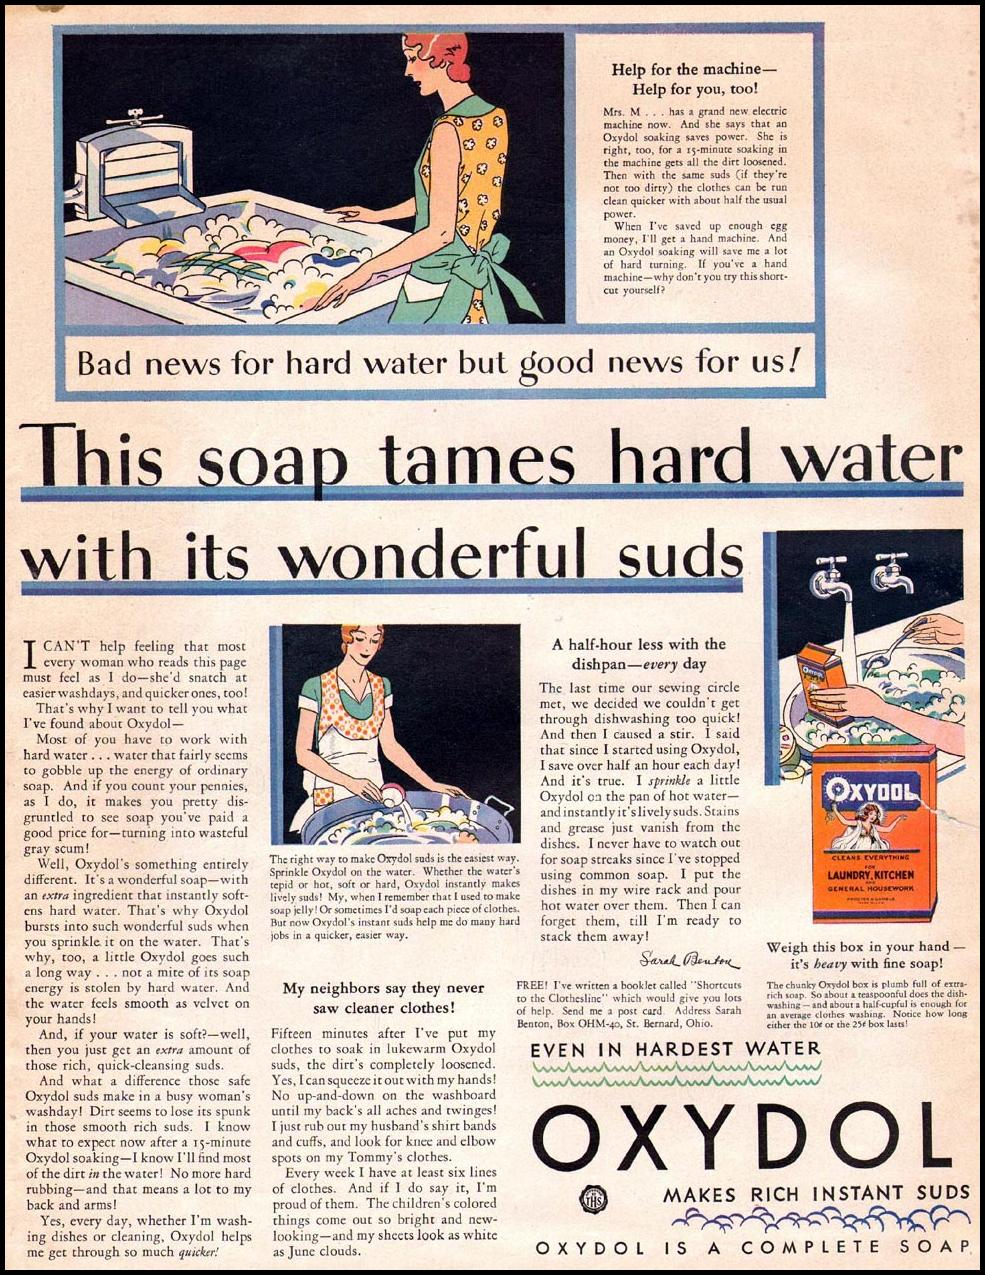 OXYDOL DETERGENT THE HOME MAGAZINE 04/01/1930 INSIDE FRONT